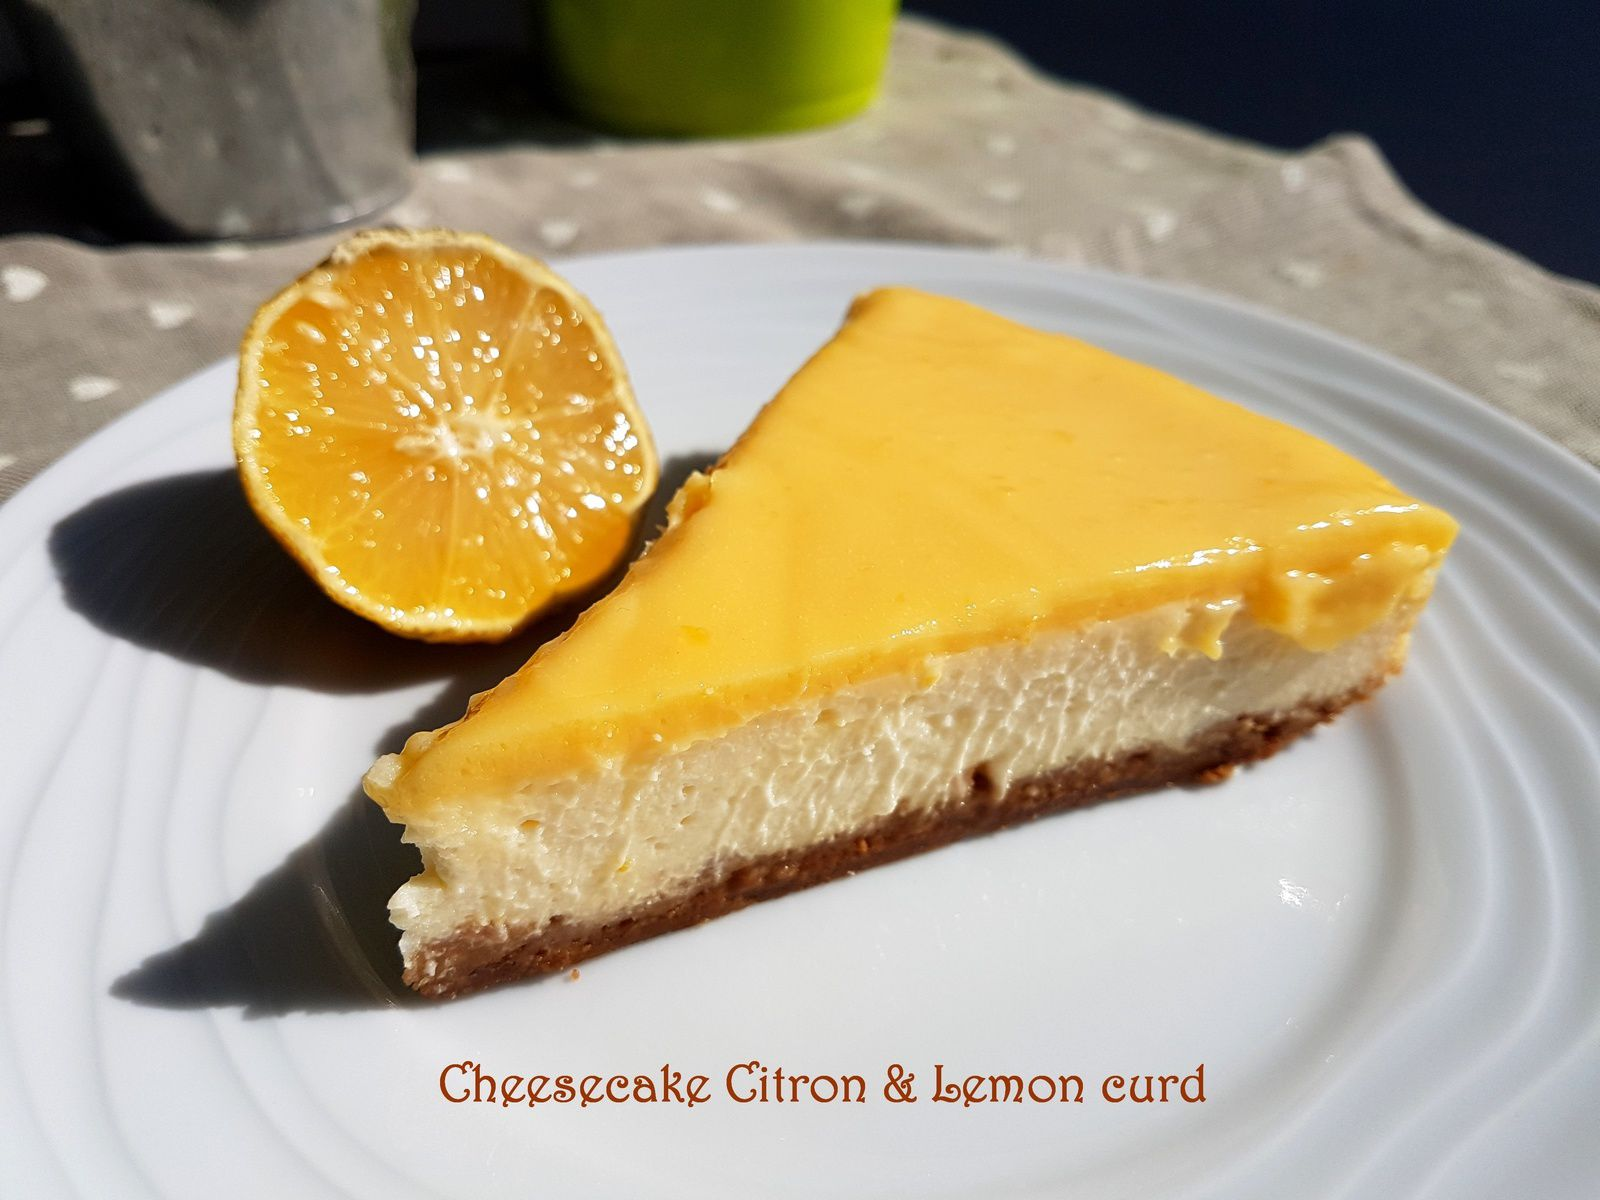 Cheesecake au citron et lemon curd thermomix sweet d lices - Trouver une conseillere thermomix ...